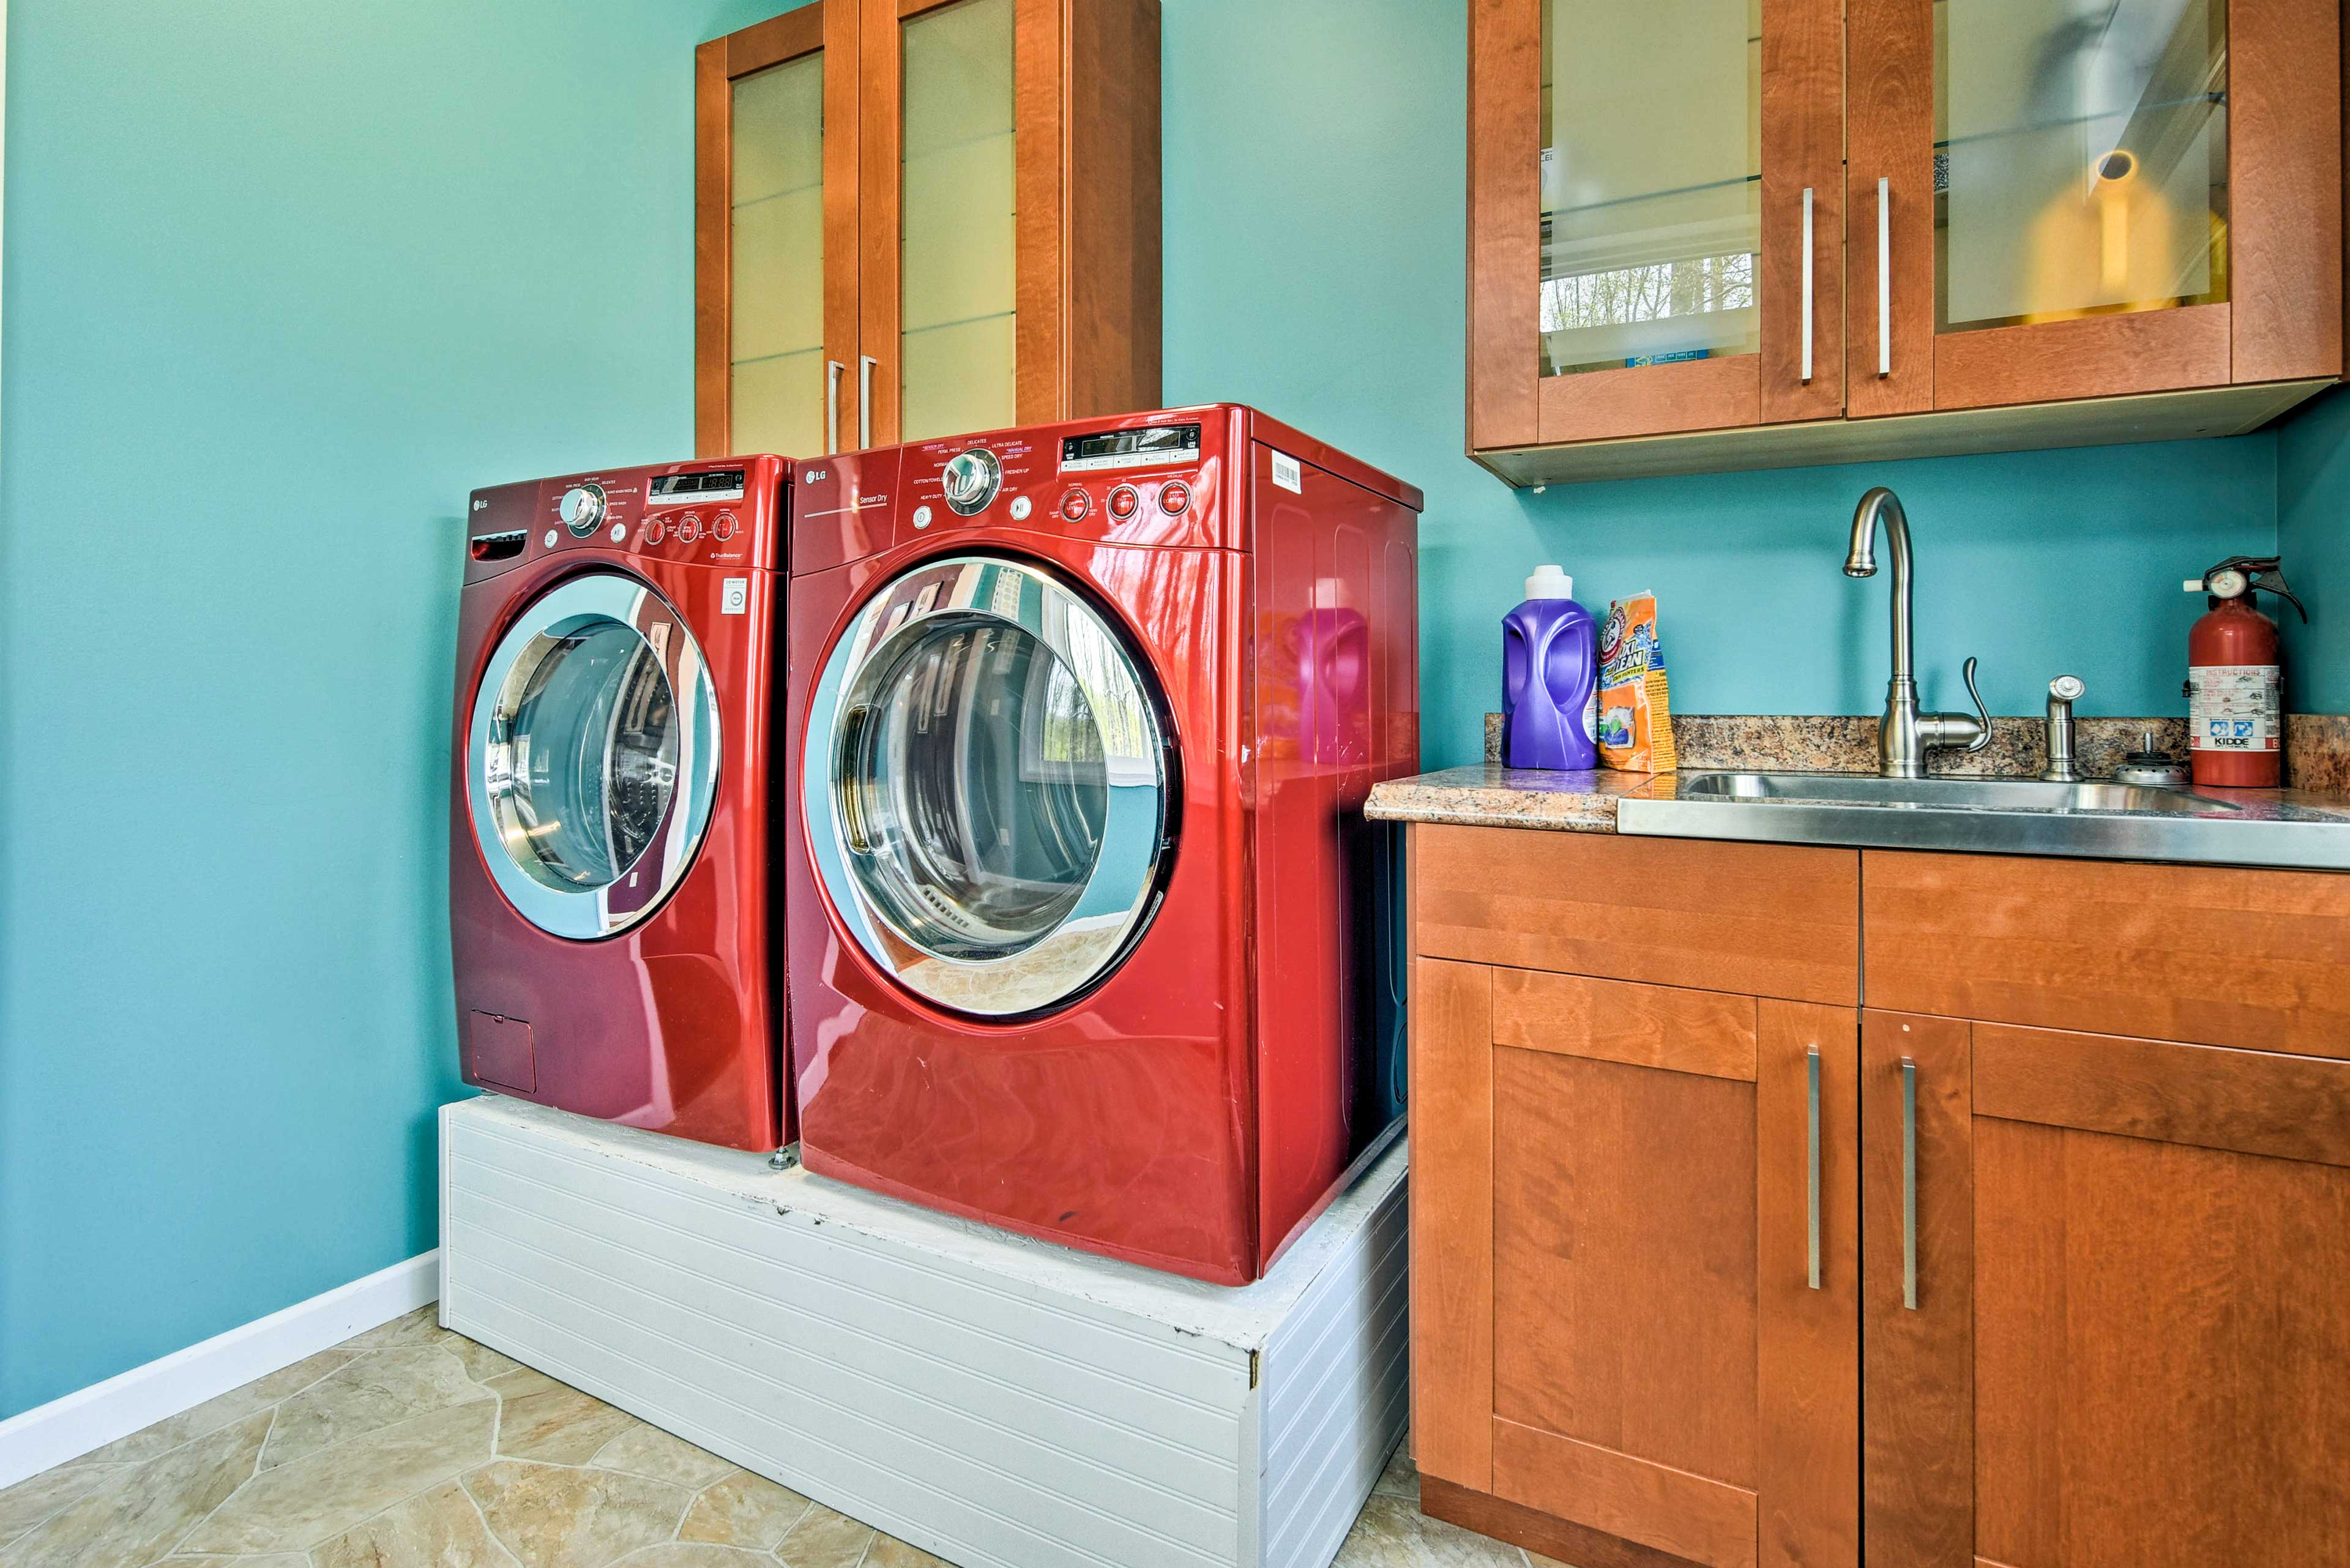 Pack light and keep your wardrobe fresh with these laundry machines.